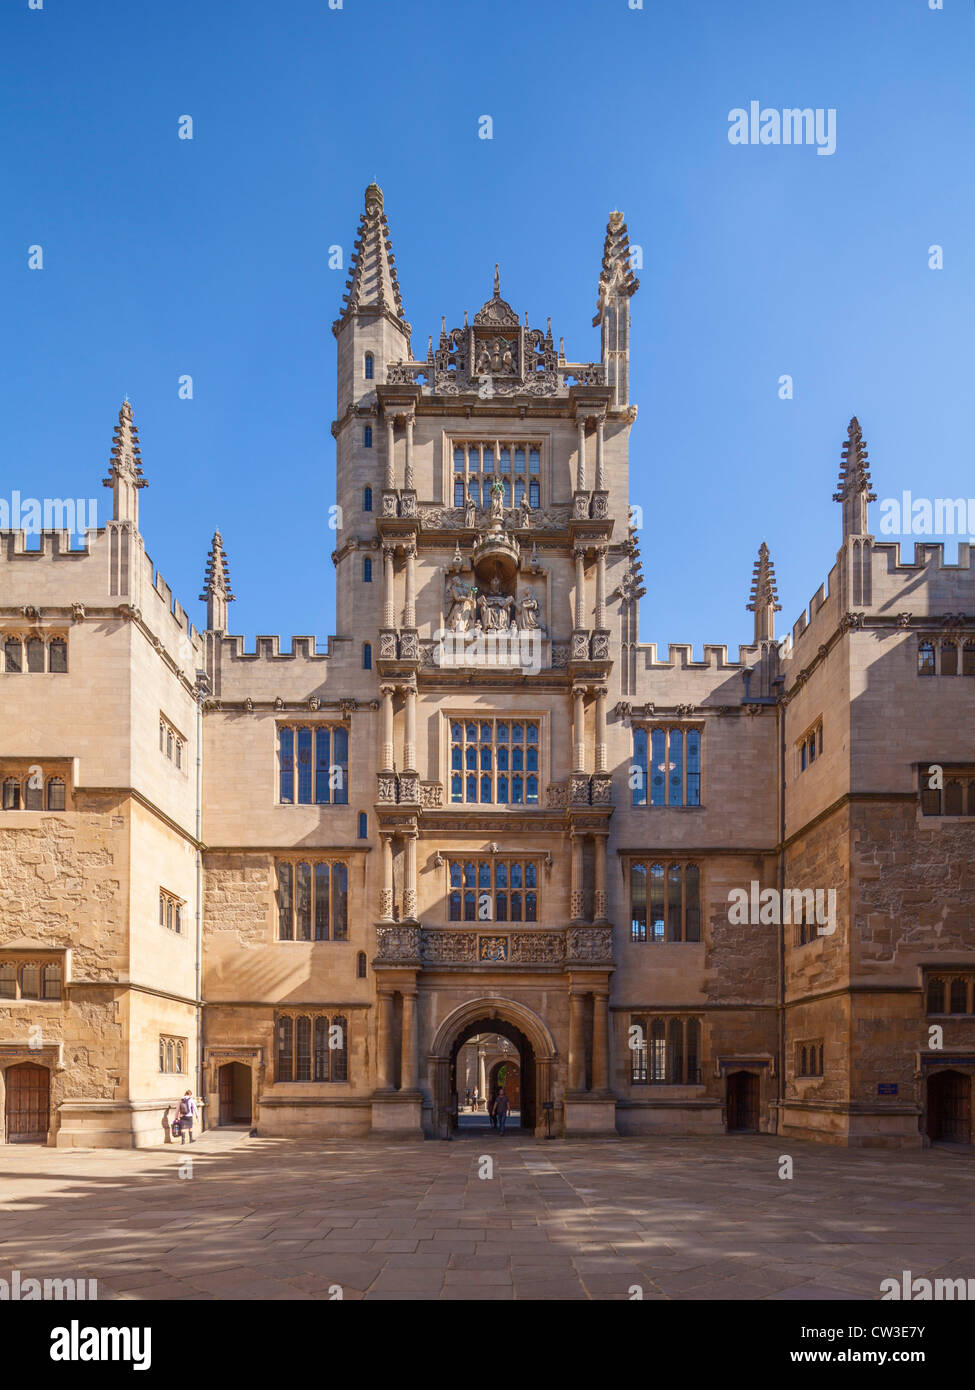 Tower of Five Orders, Bodleian Library, Oxford - Stock Image